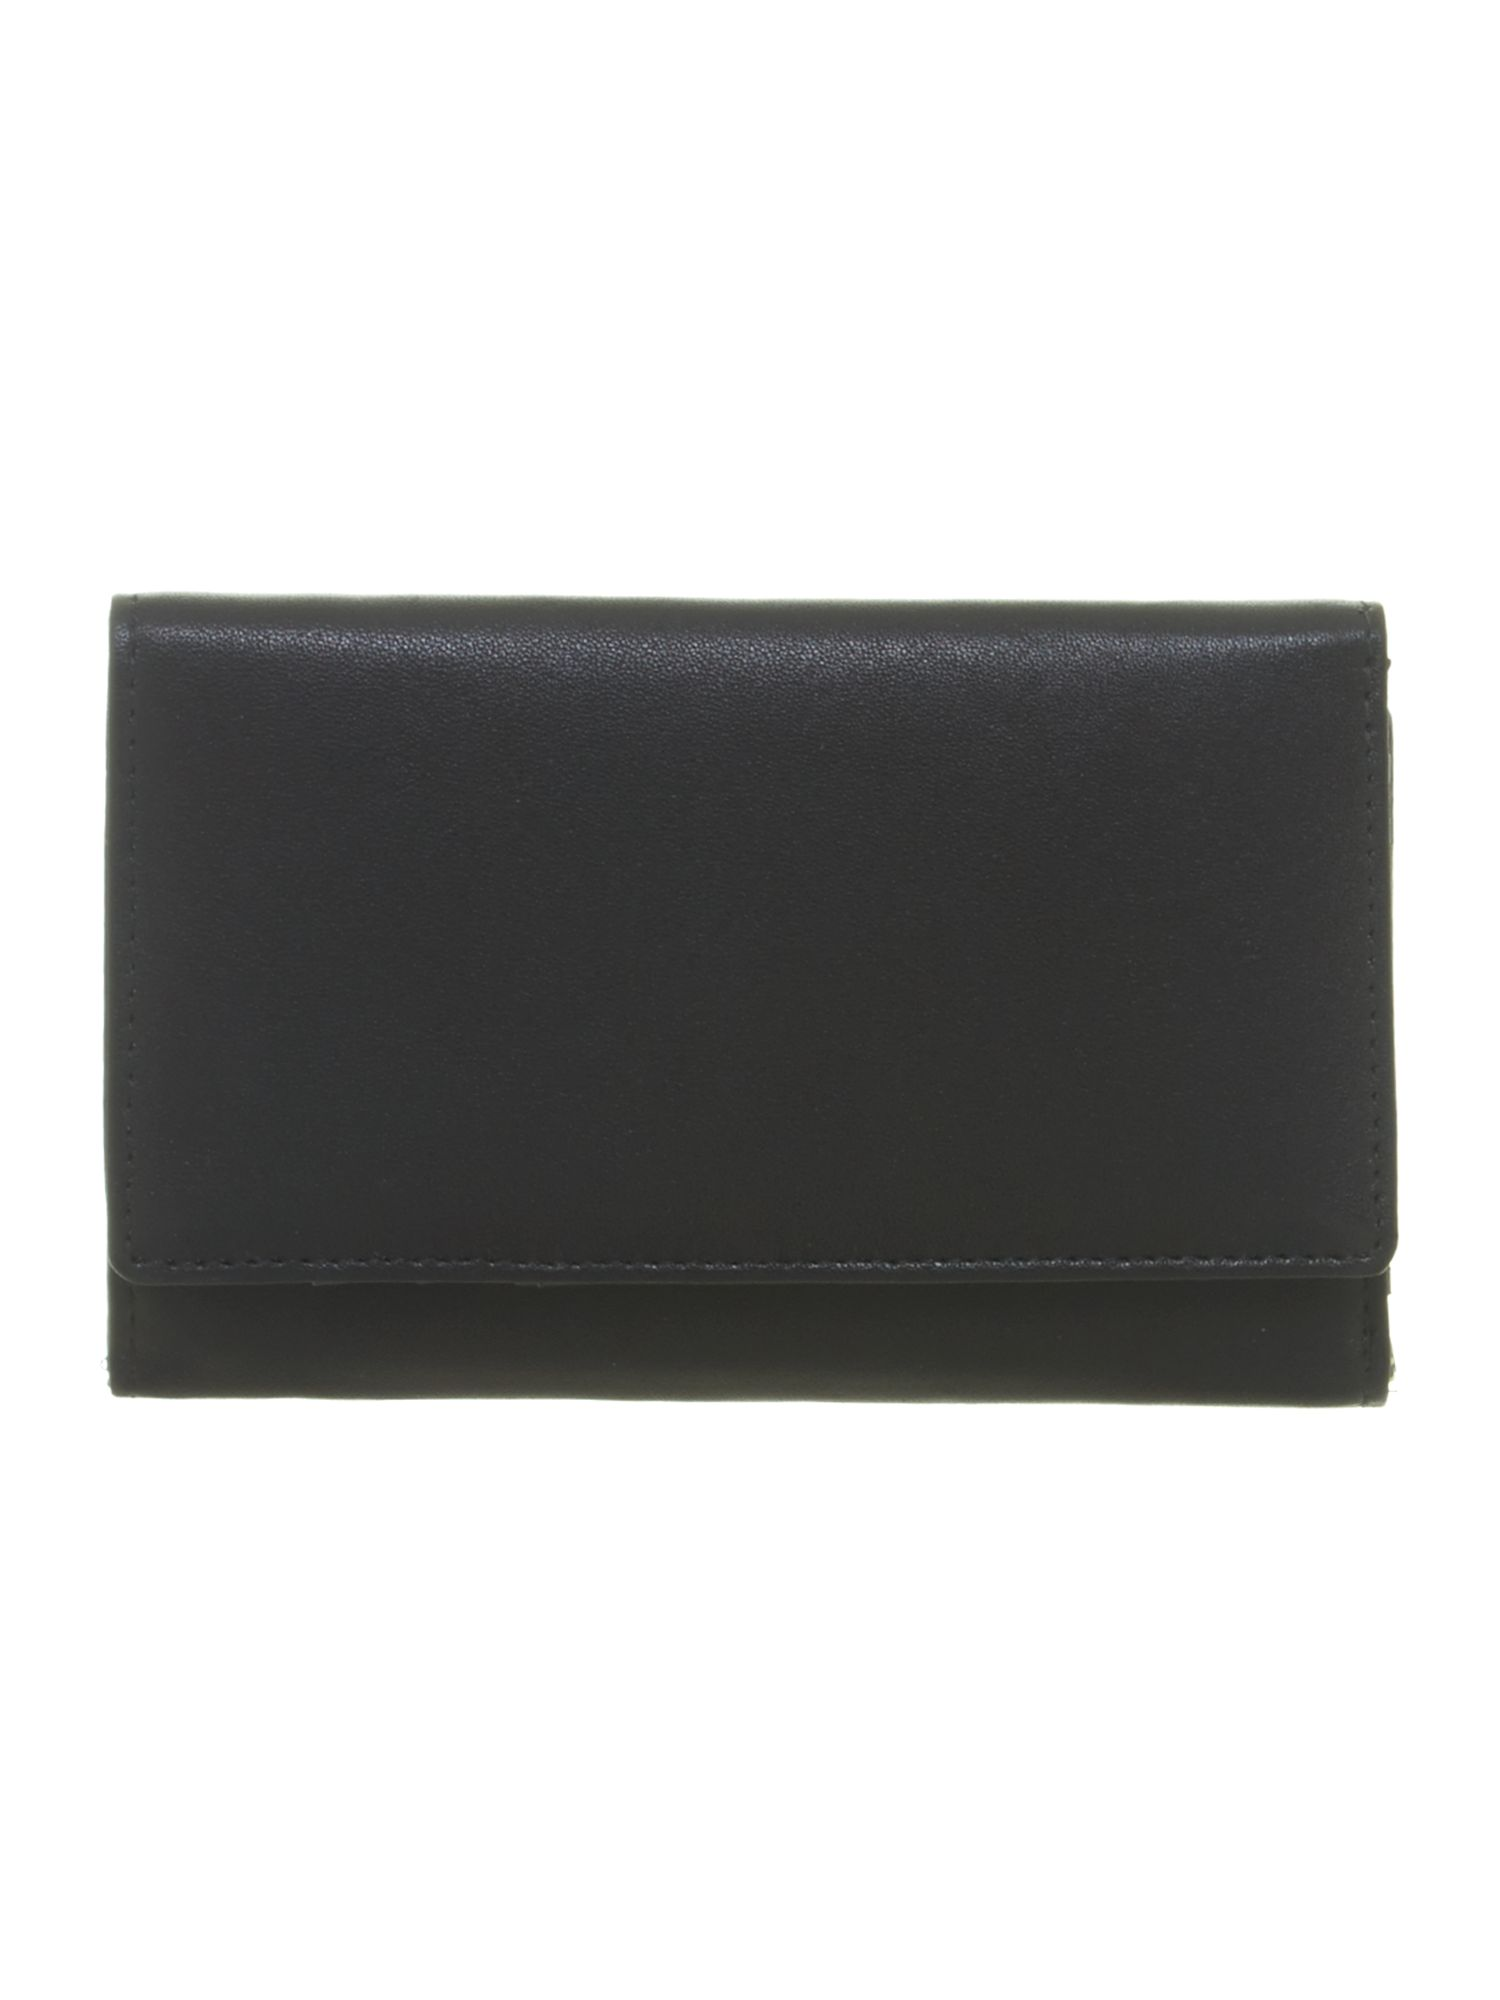 Black spot internal meduim leather flapover purse